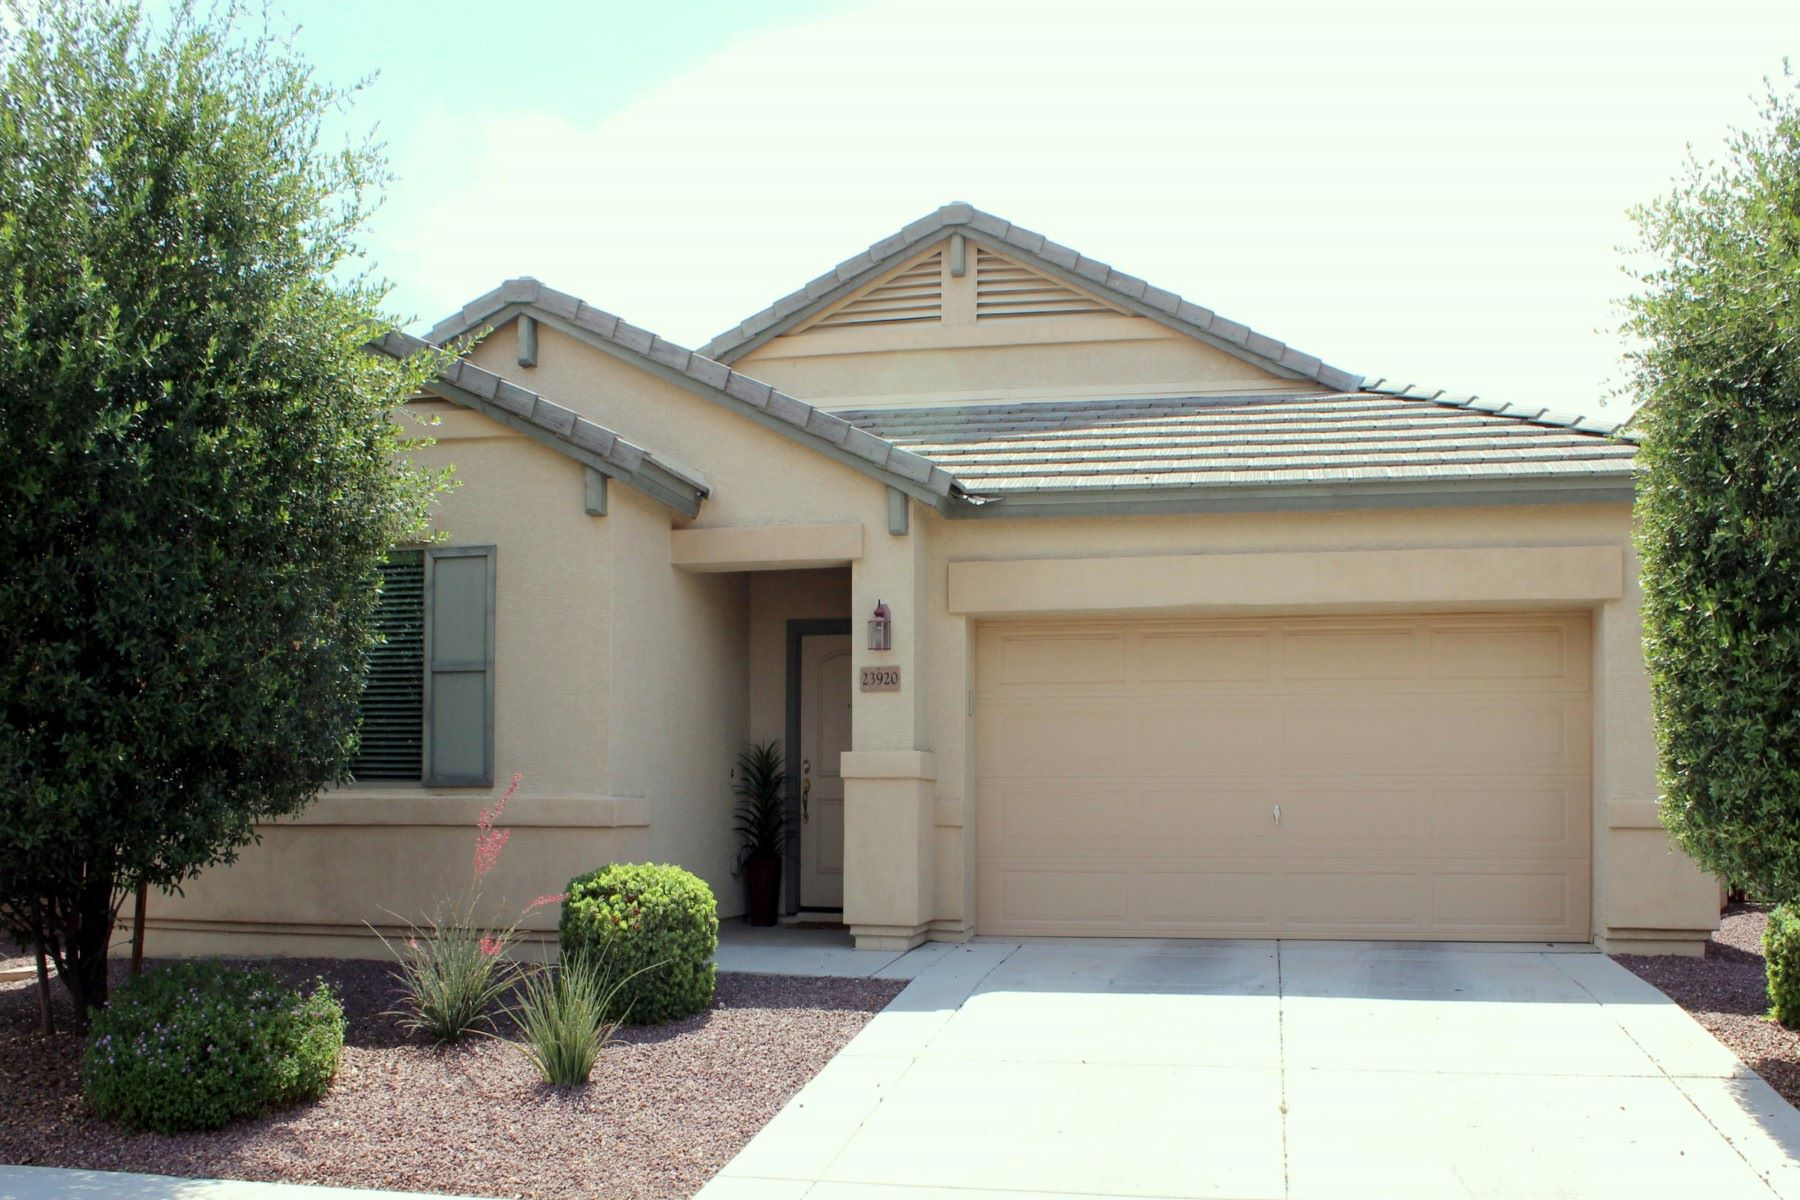 Single Family Home for Sale at Excellent Location and Value 23920 N 23rd Pl Phoenix, Arizona, 85024 United States